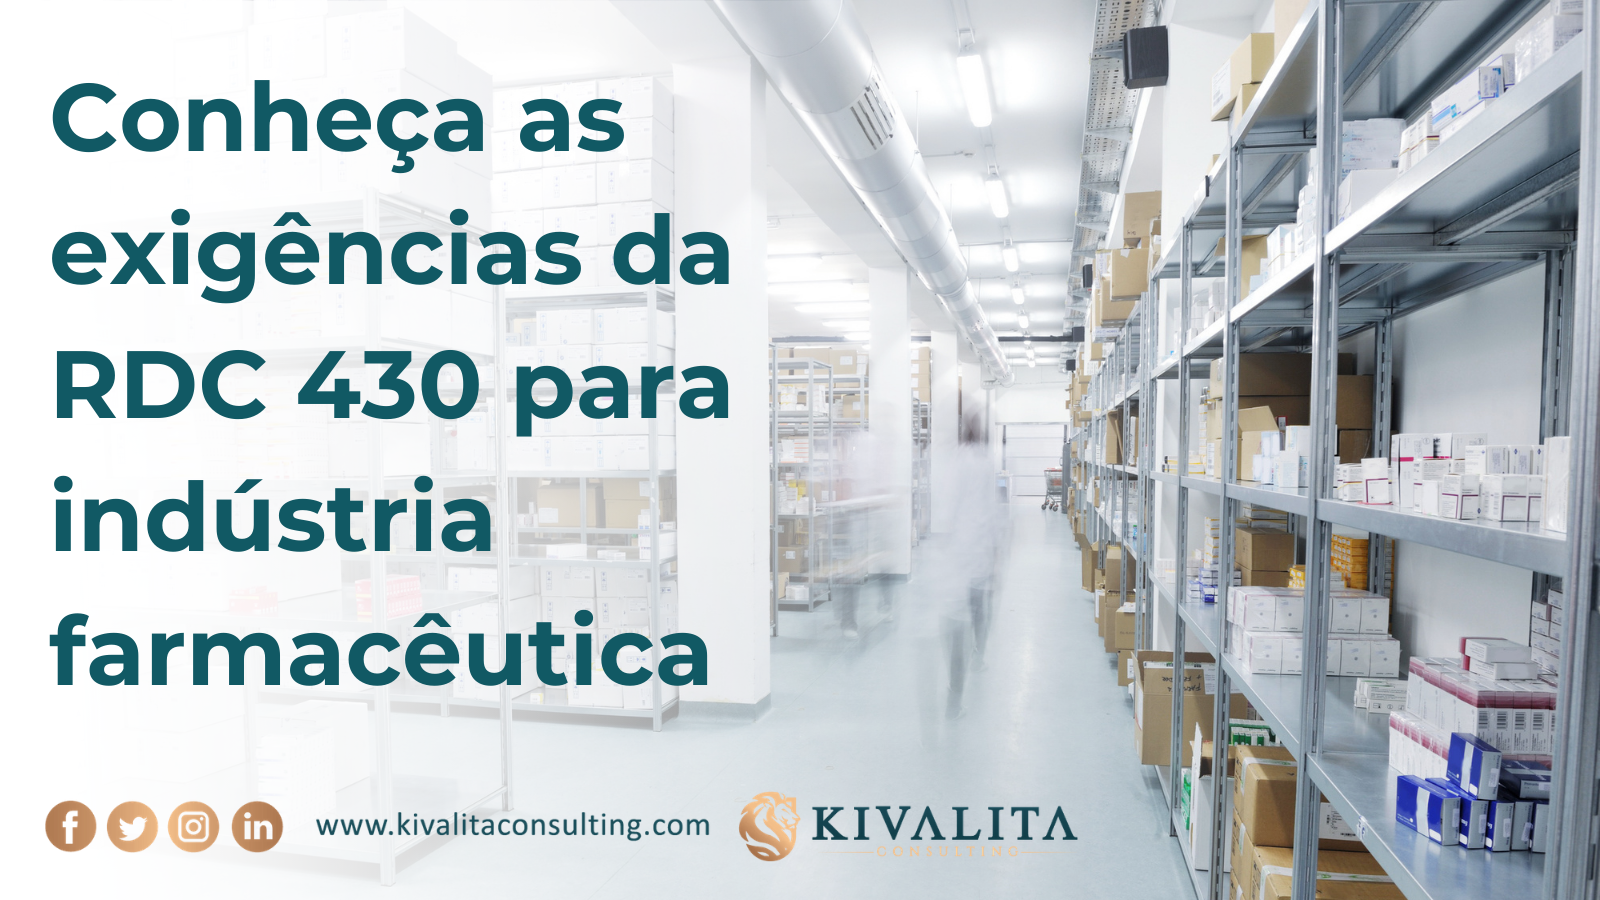 Meet the requirements of RDC 430 for the pharmaceutical industry